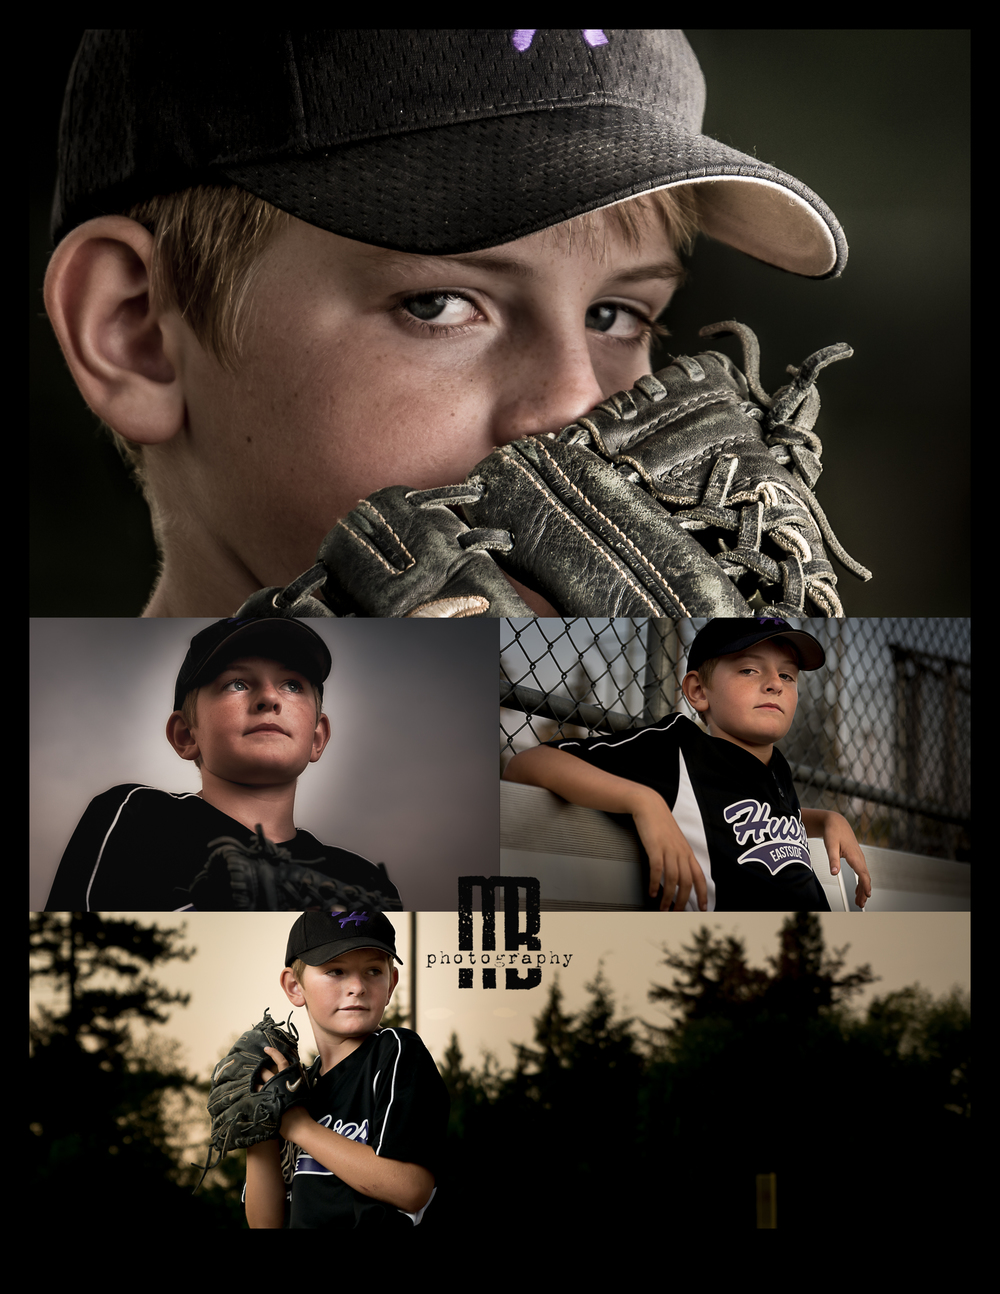 Mason Baseball portrait collage